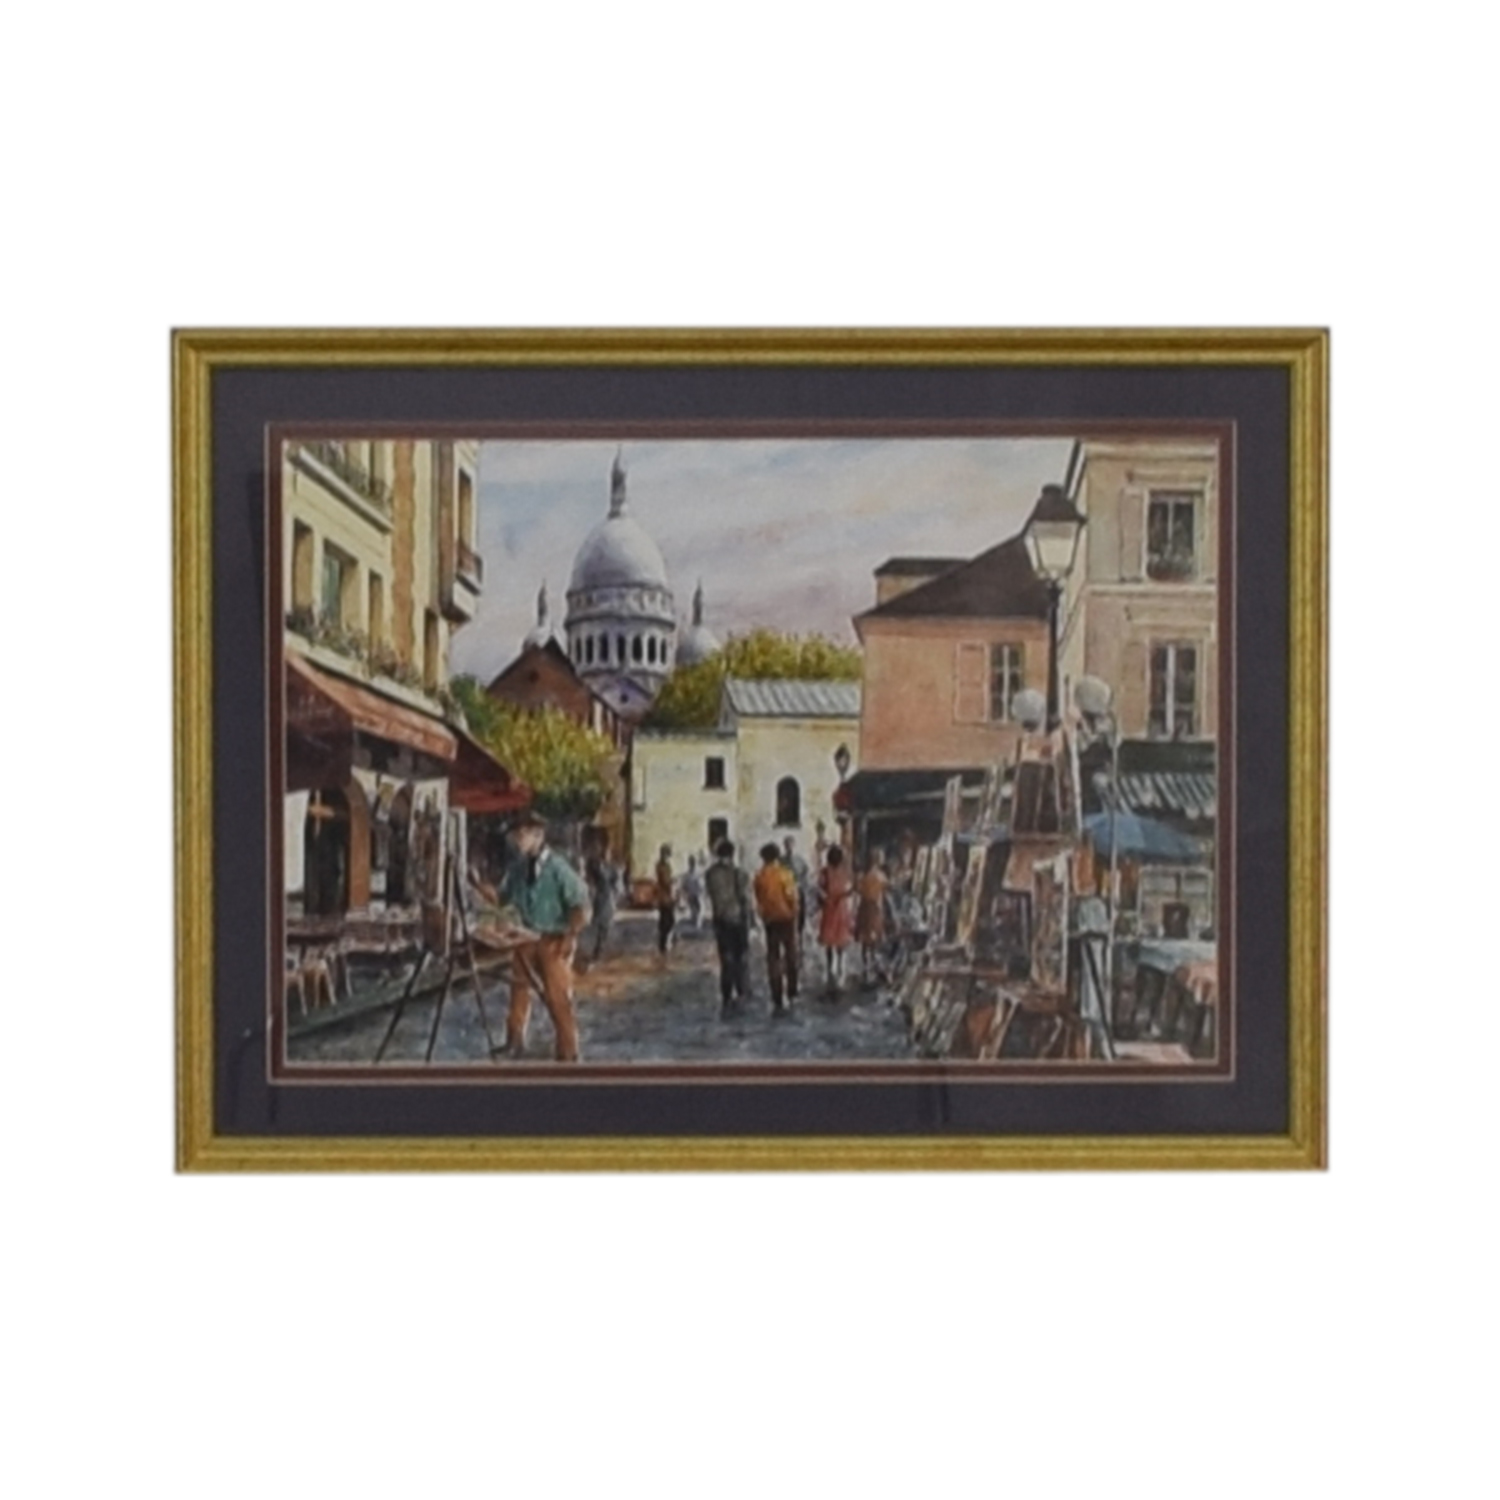 Framed Print of Montmarte Art Scene on sale